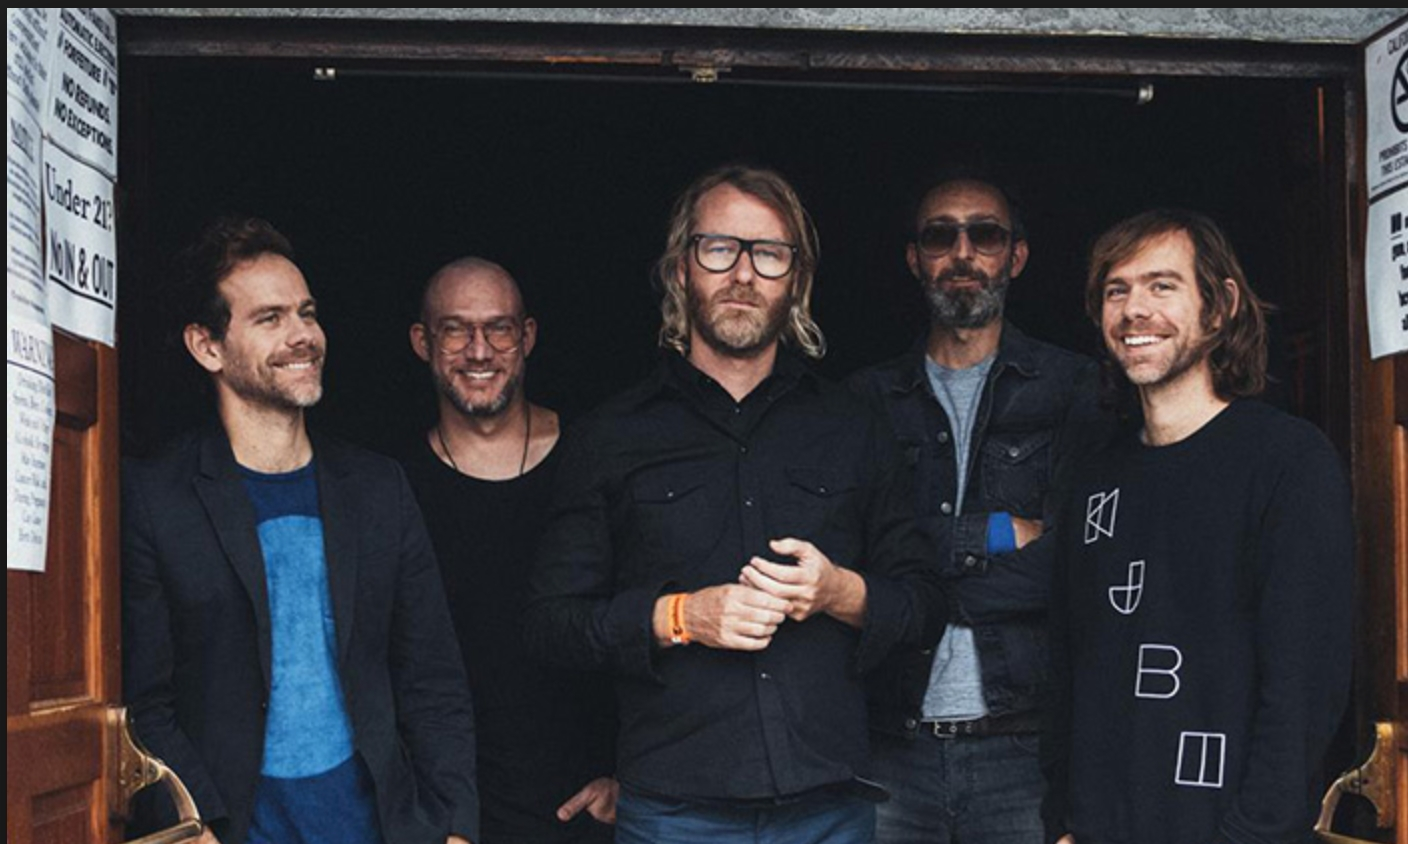 The National: The System Only Dreams in Total Darkness